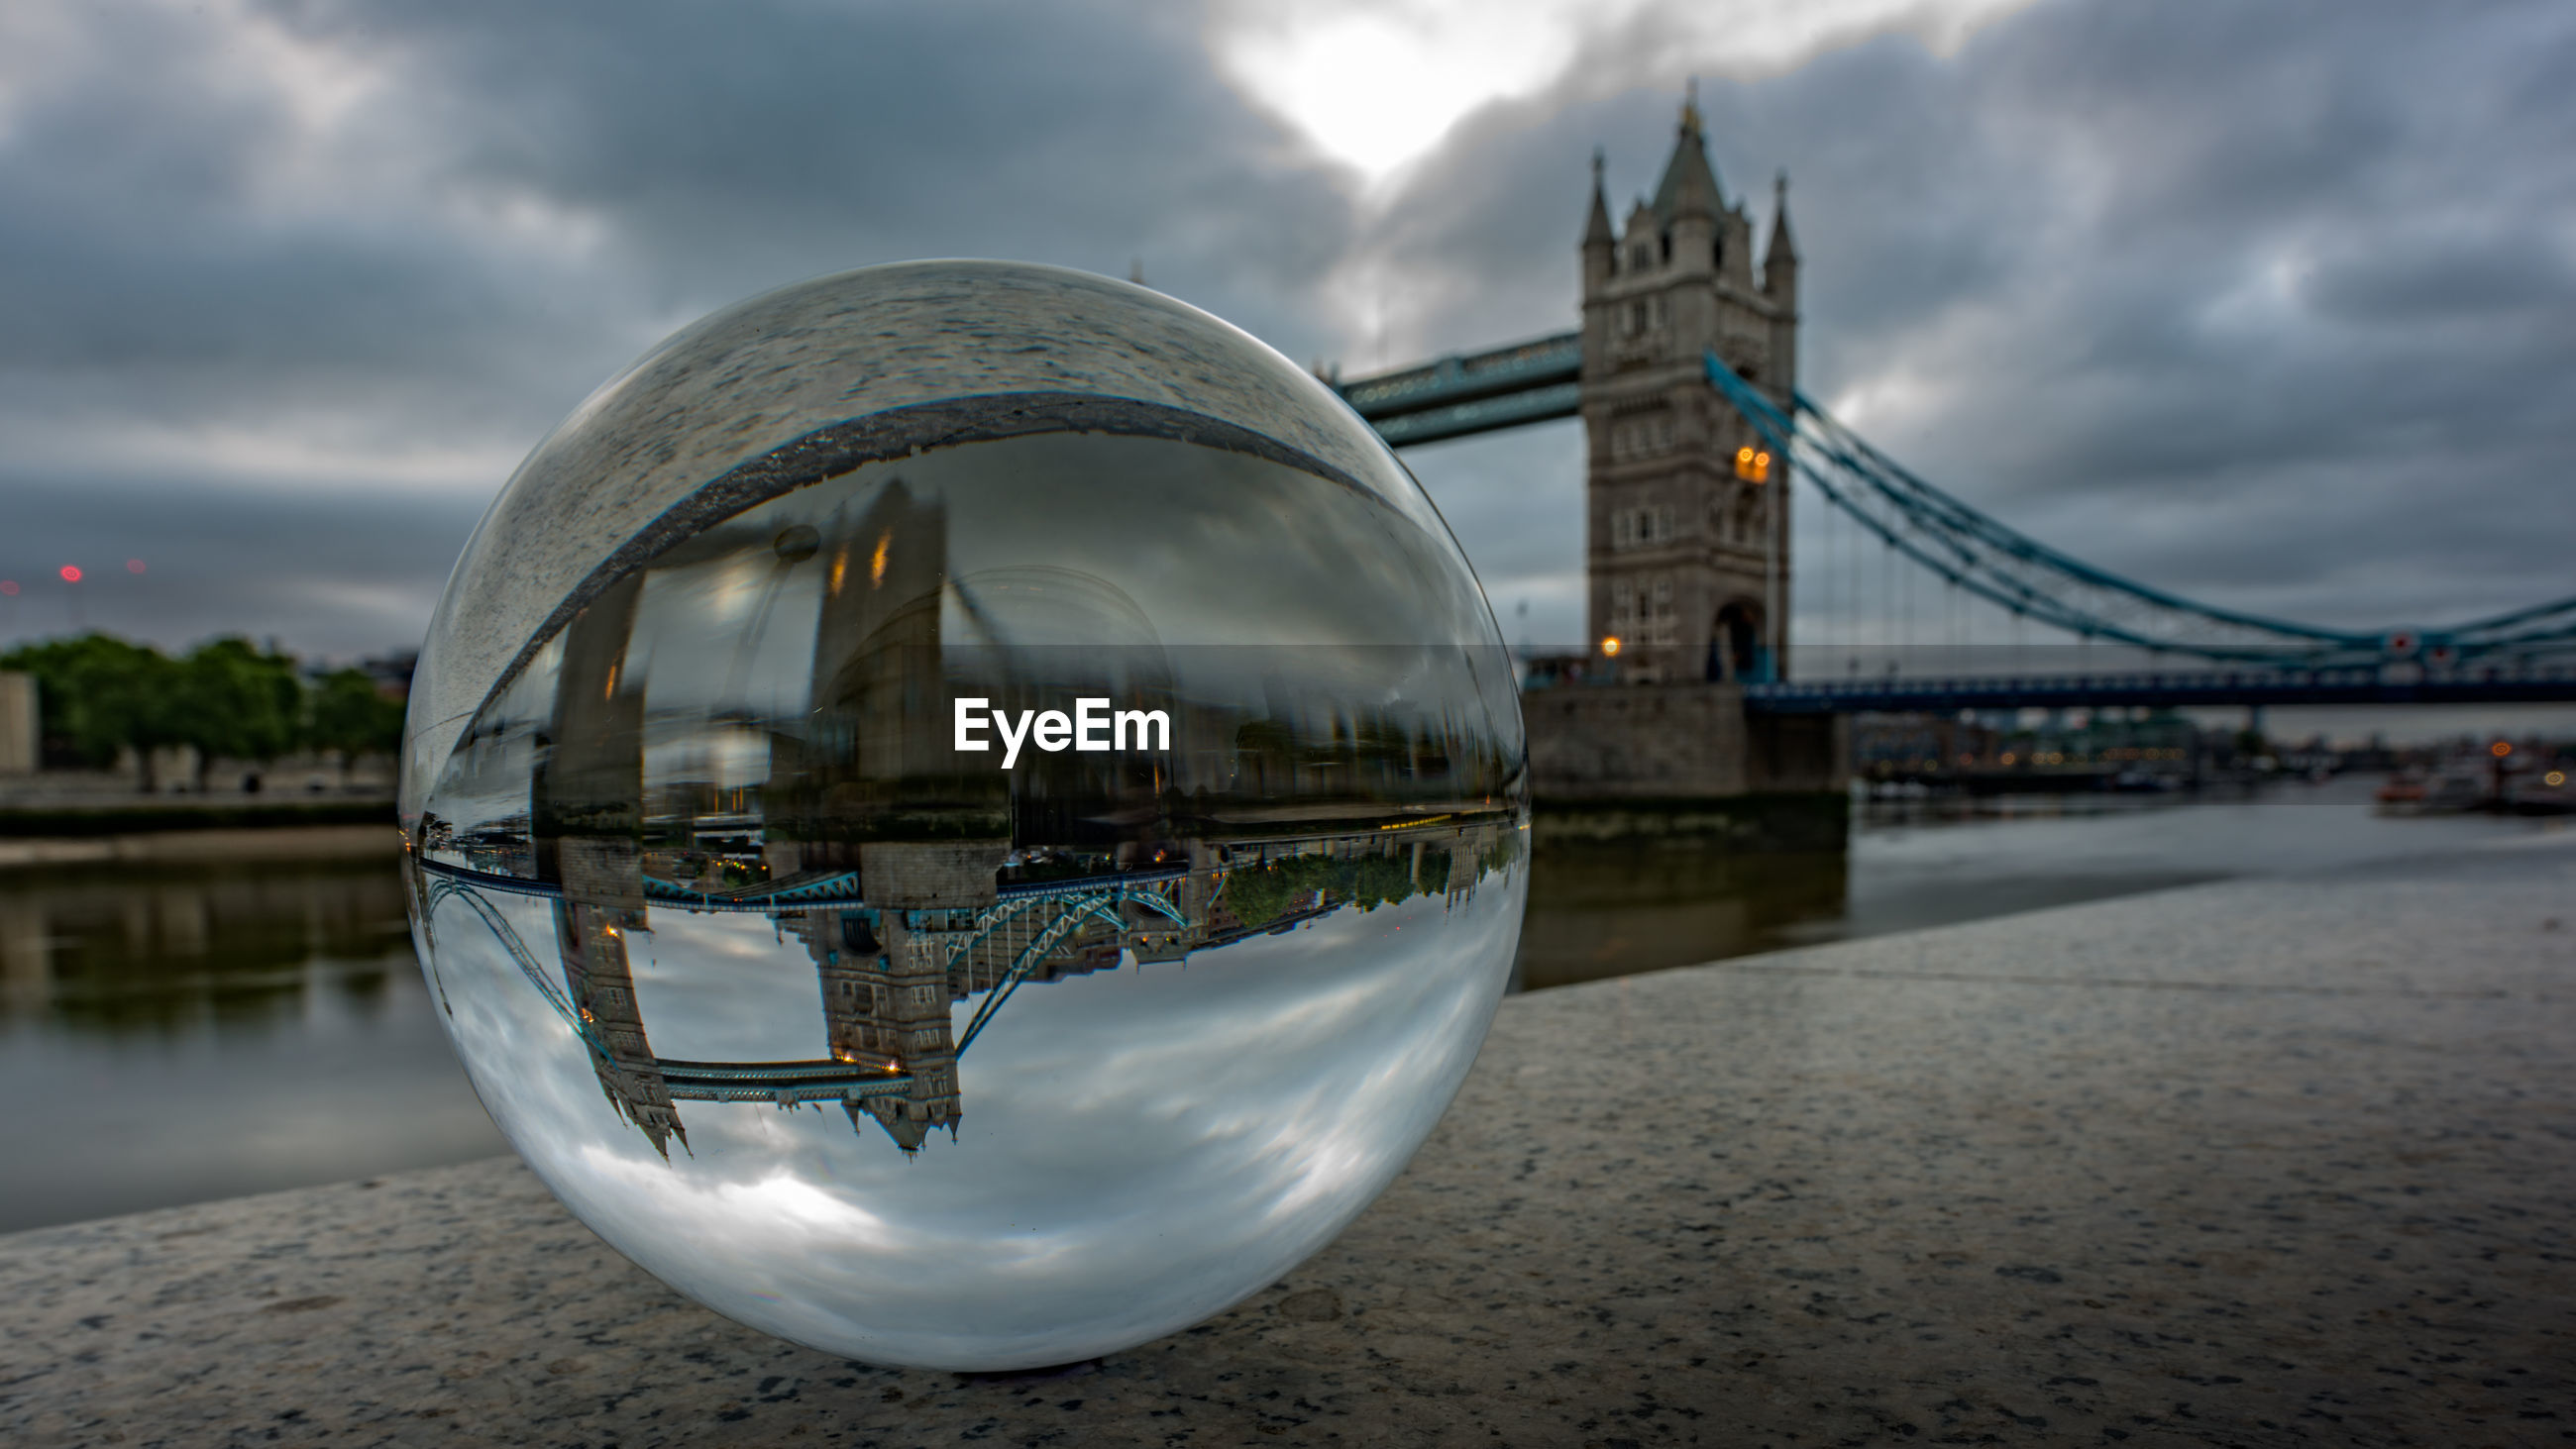 Reflection of london bridge on crystal ball at retaining wall against cloudy sky during sunset